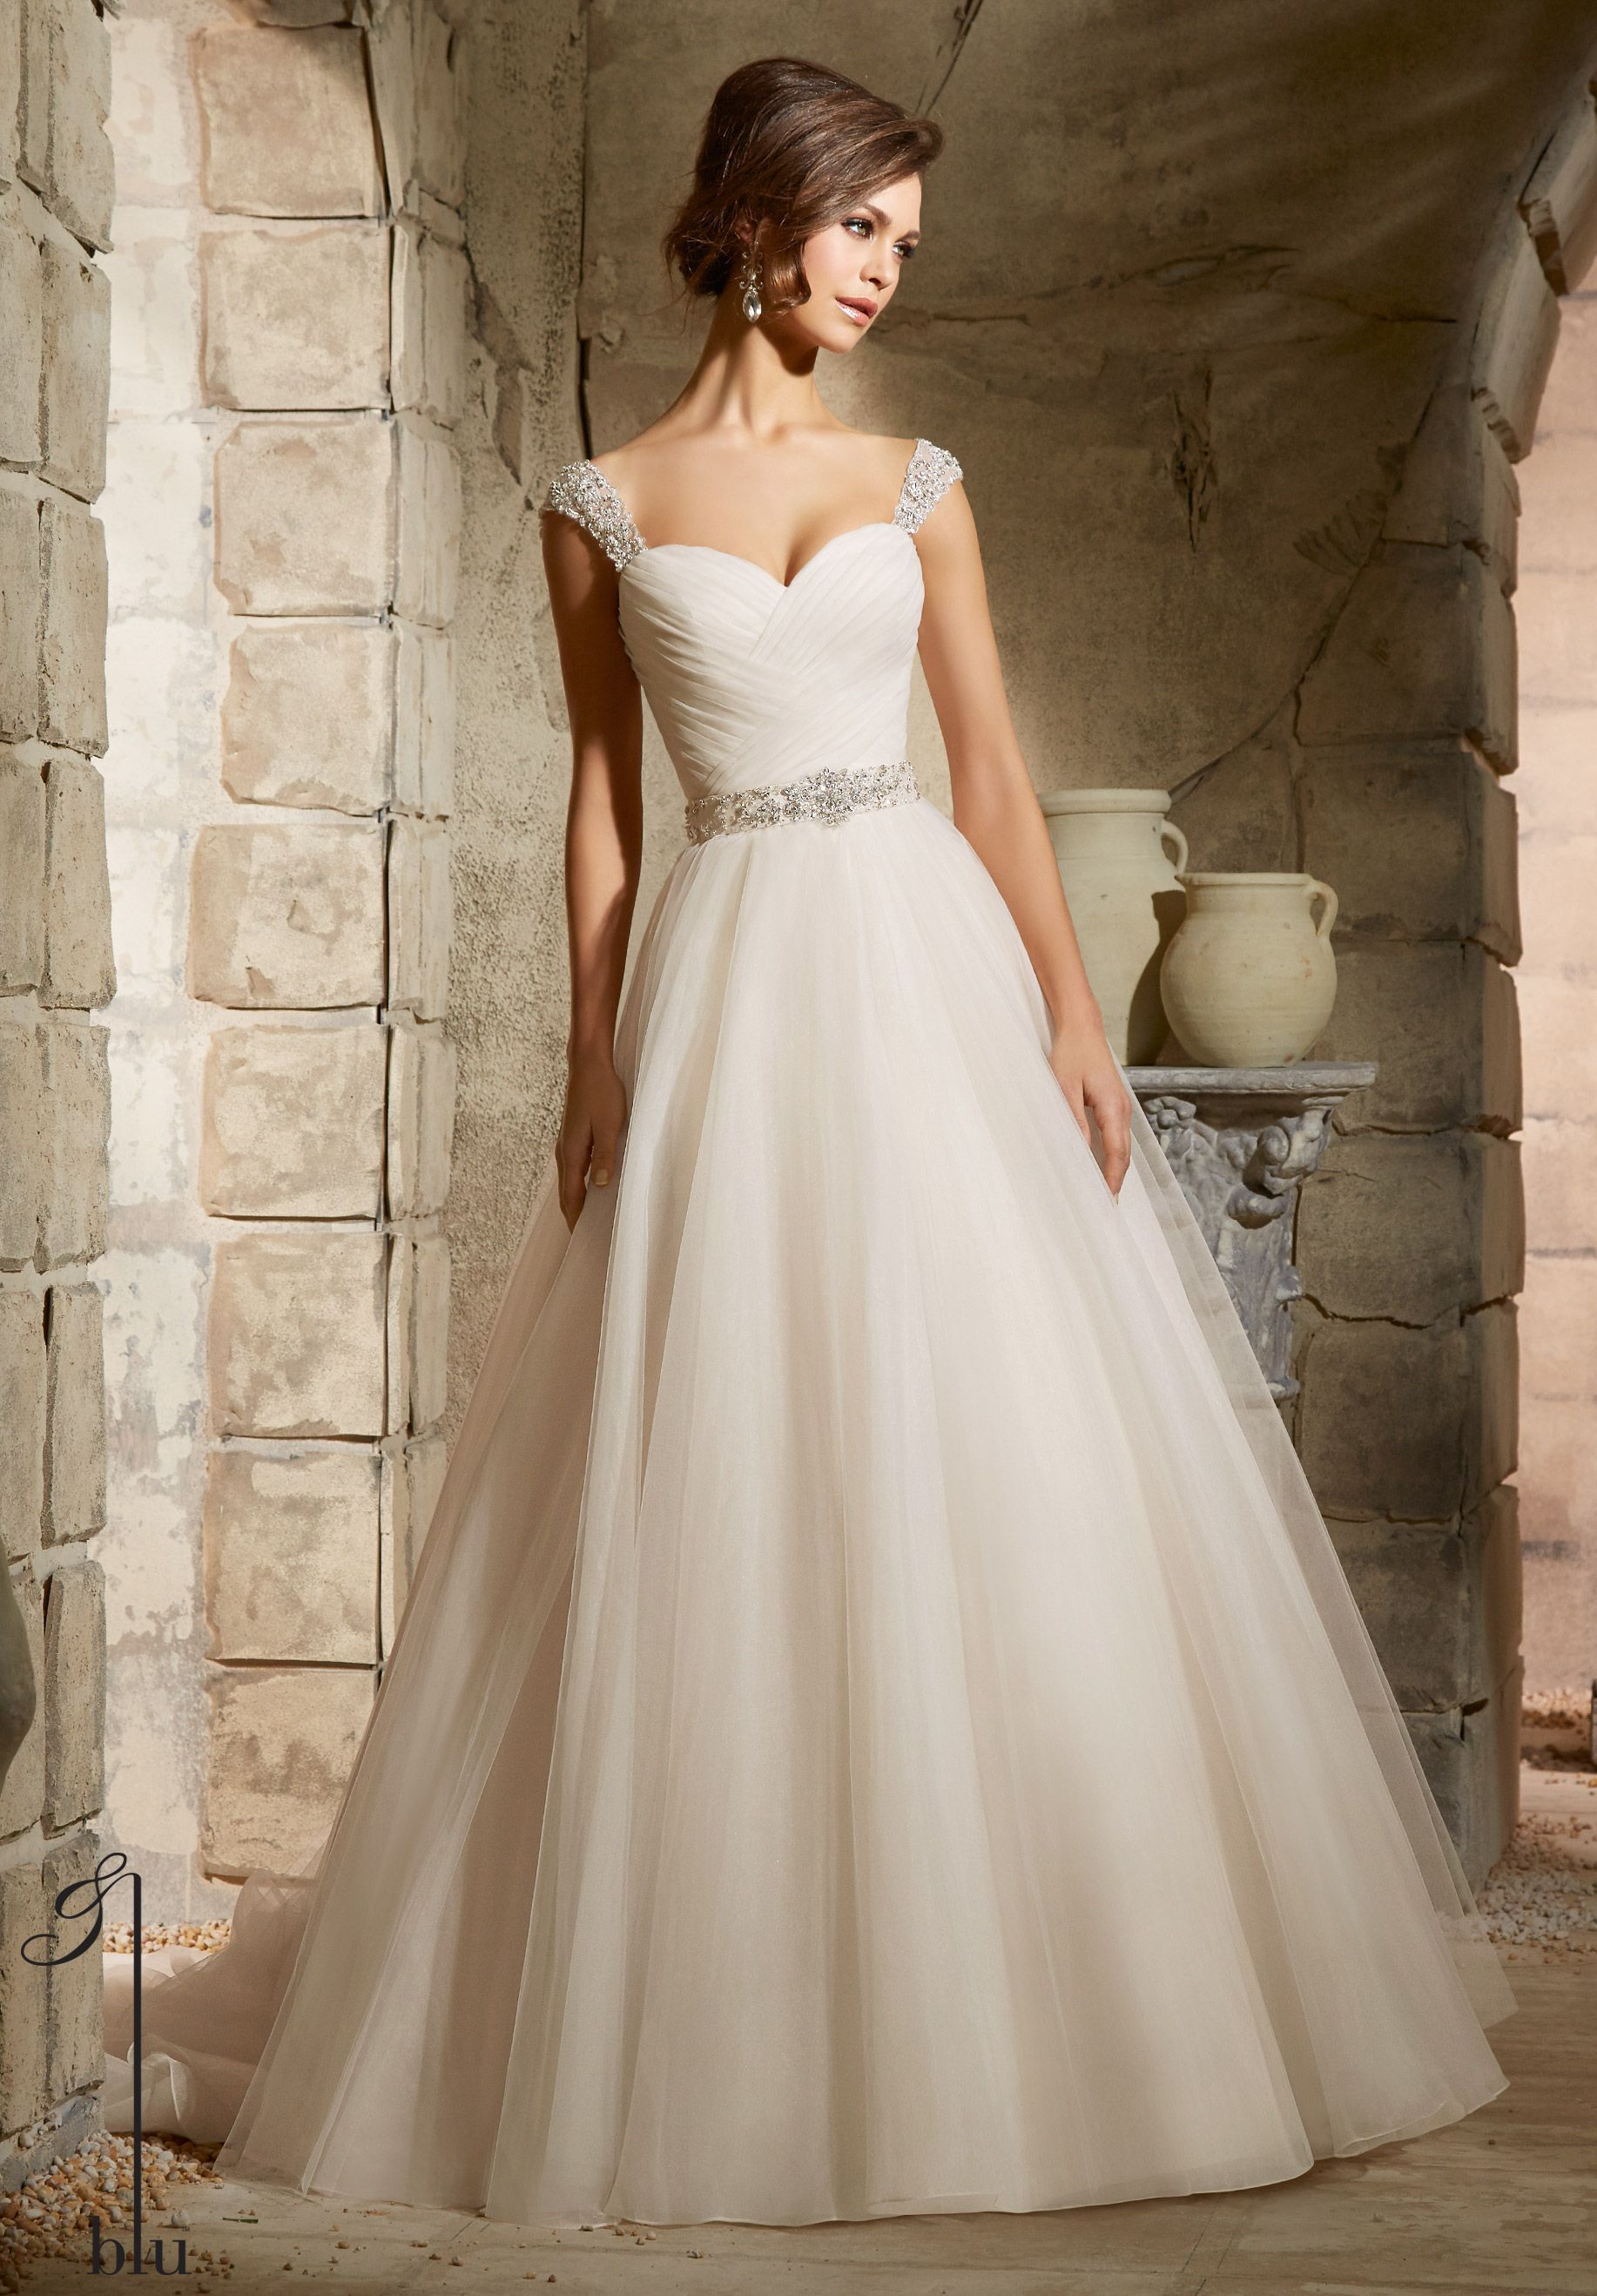 Wedding dresses for large busts  Wedding Gowns By Blu featuring Asymmetrically Draped Bodice on a